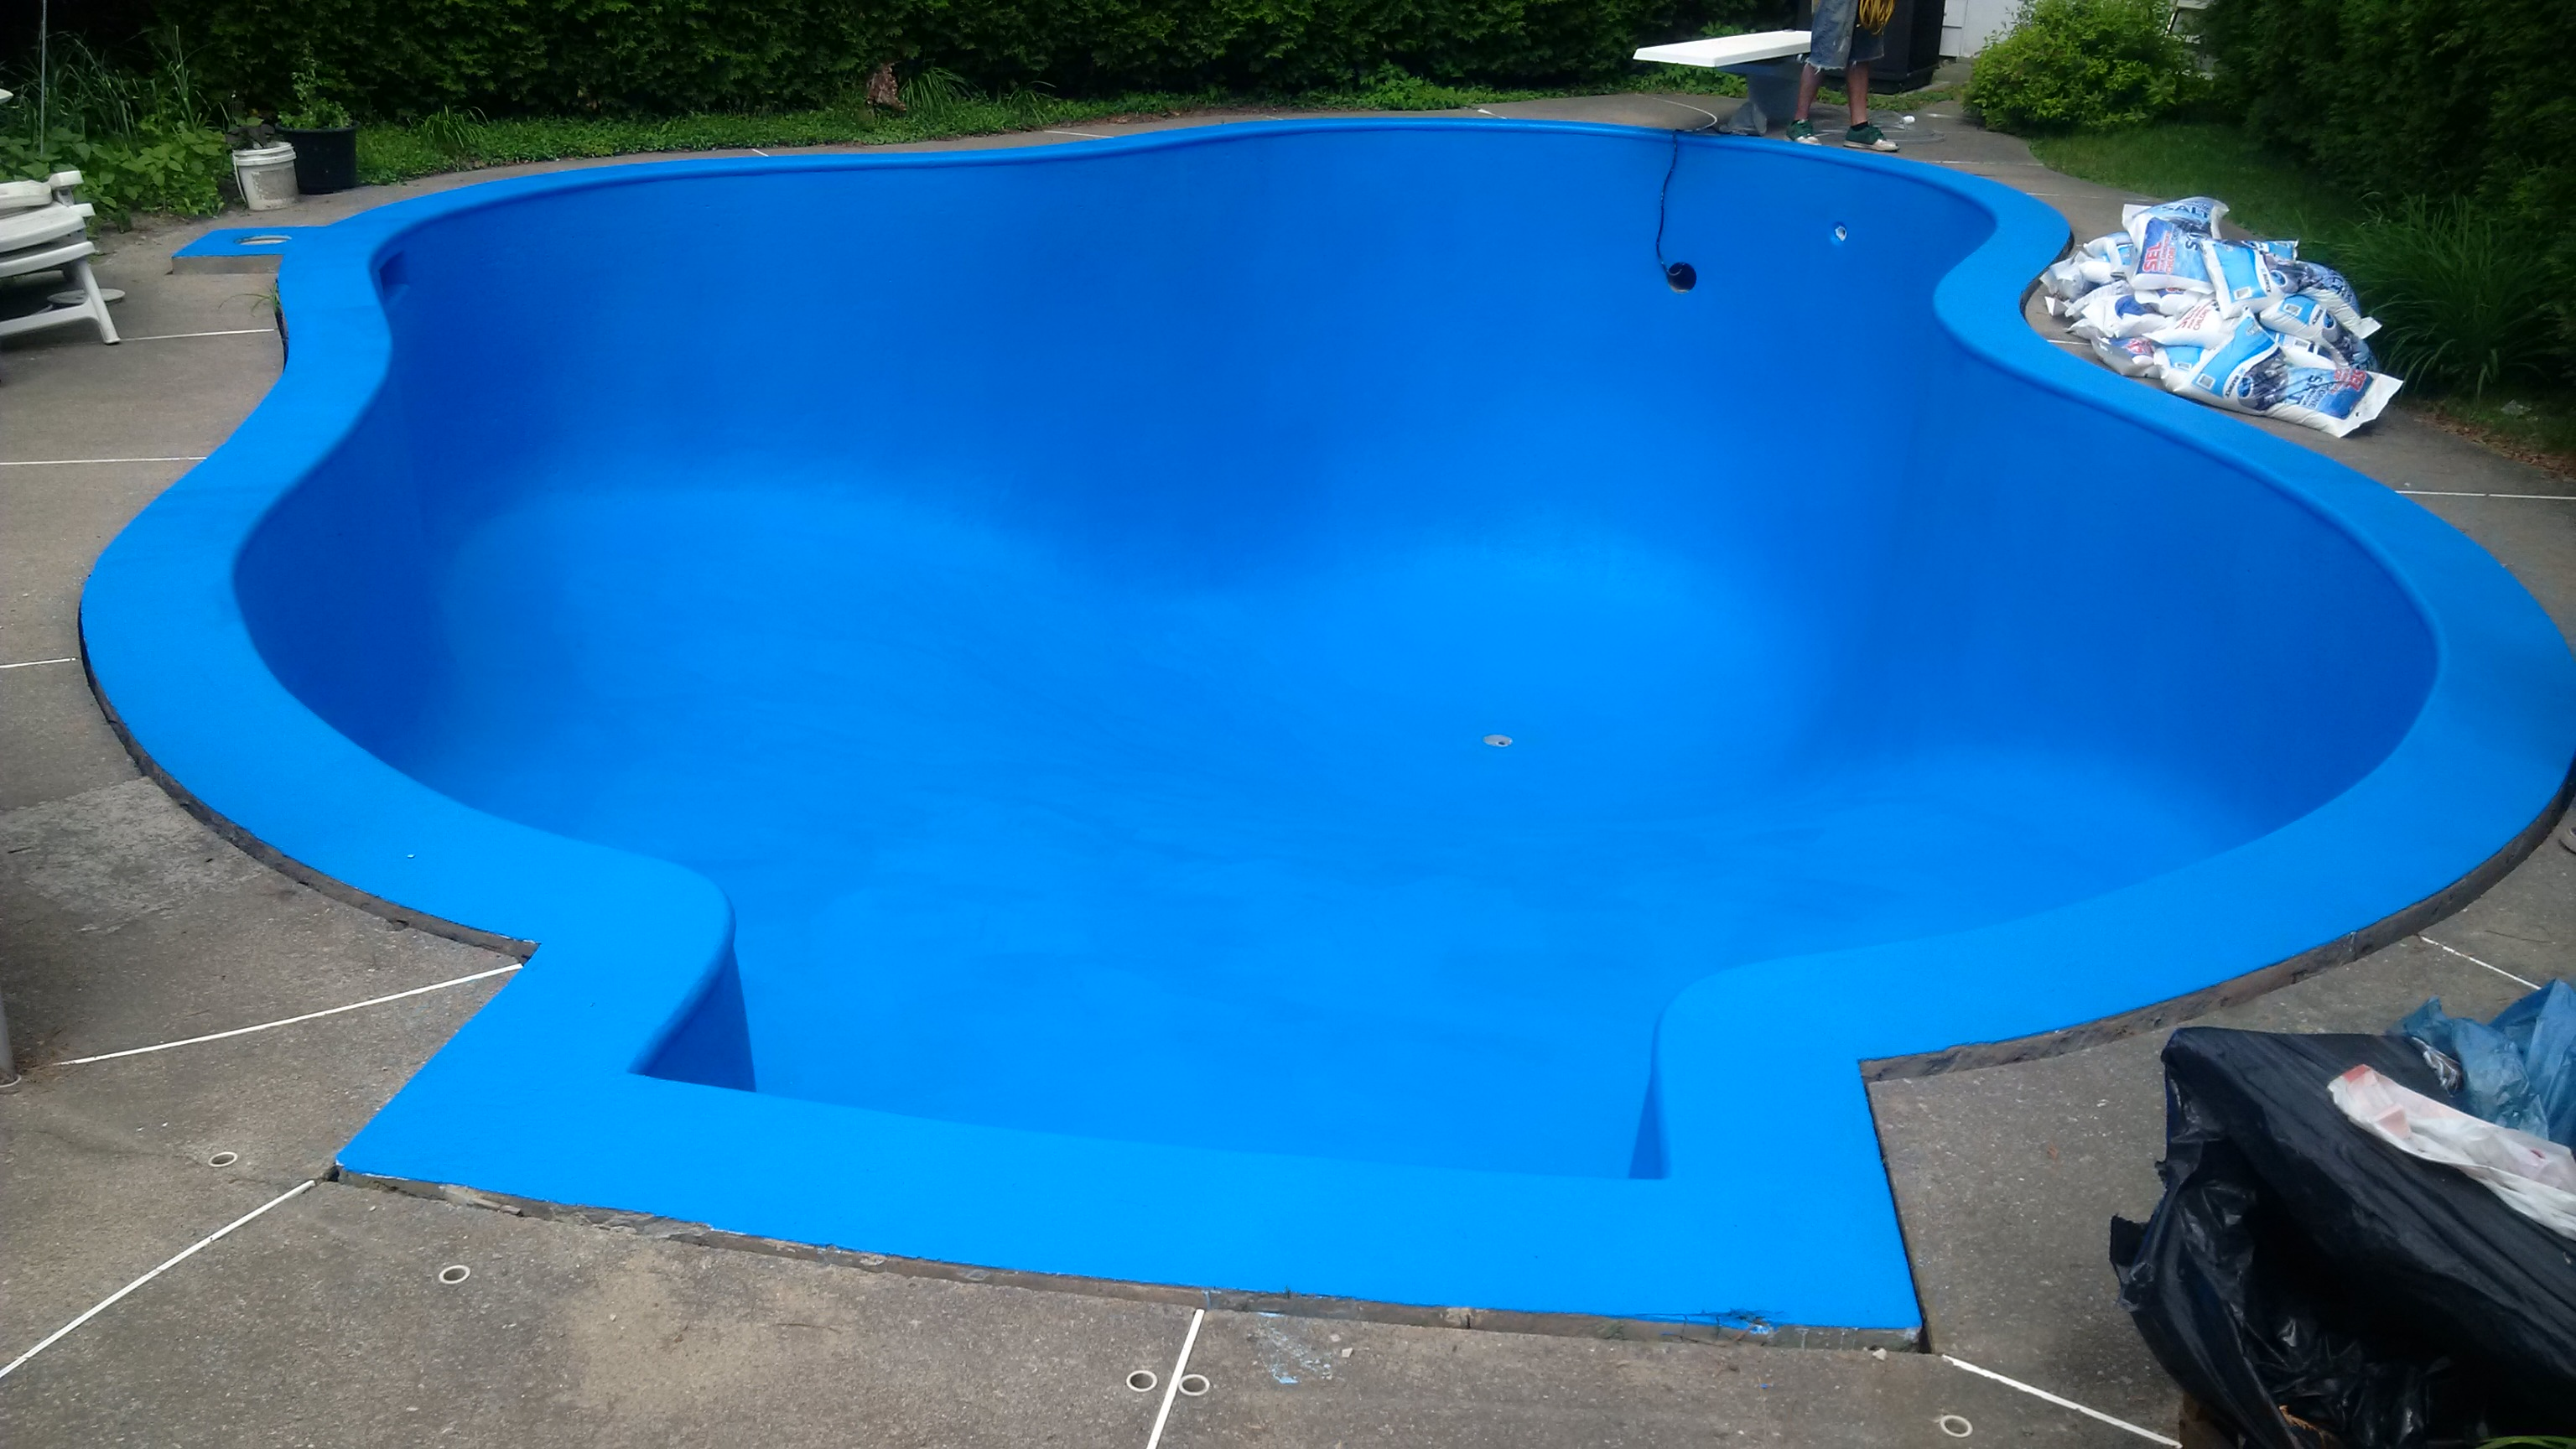 R novation r paration de piscine jf piscines for Peinture piscine beton